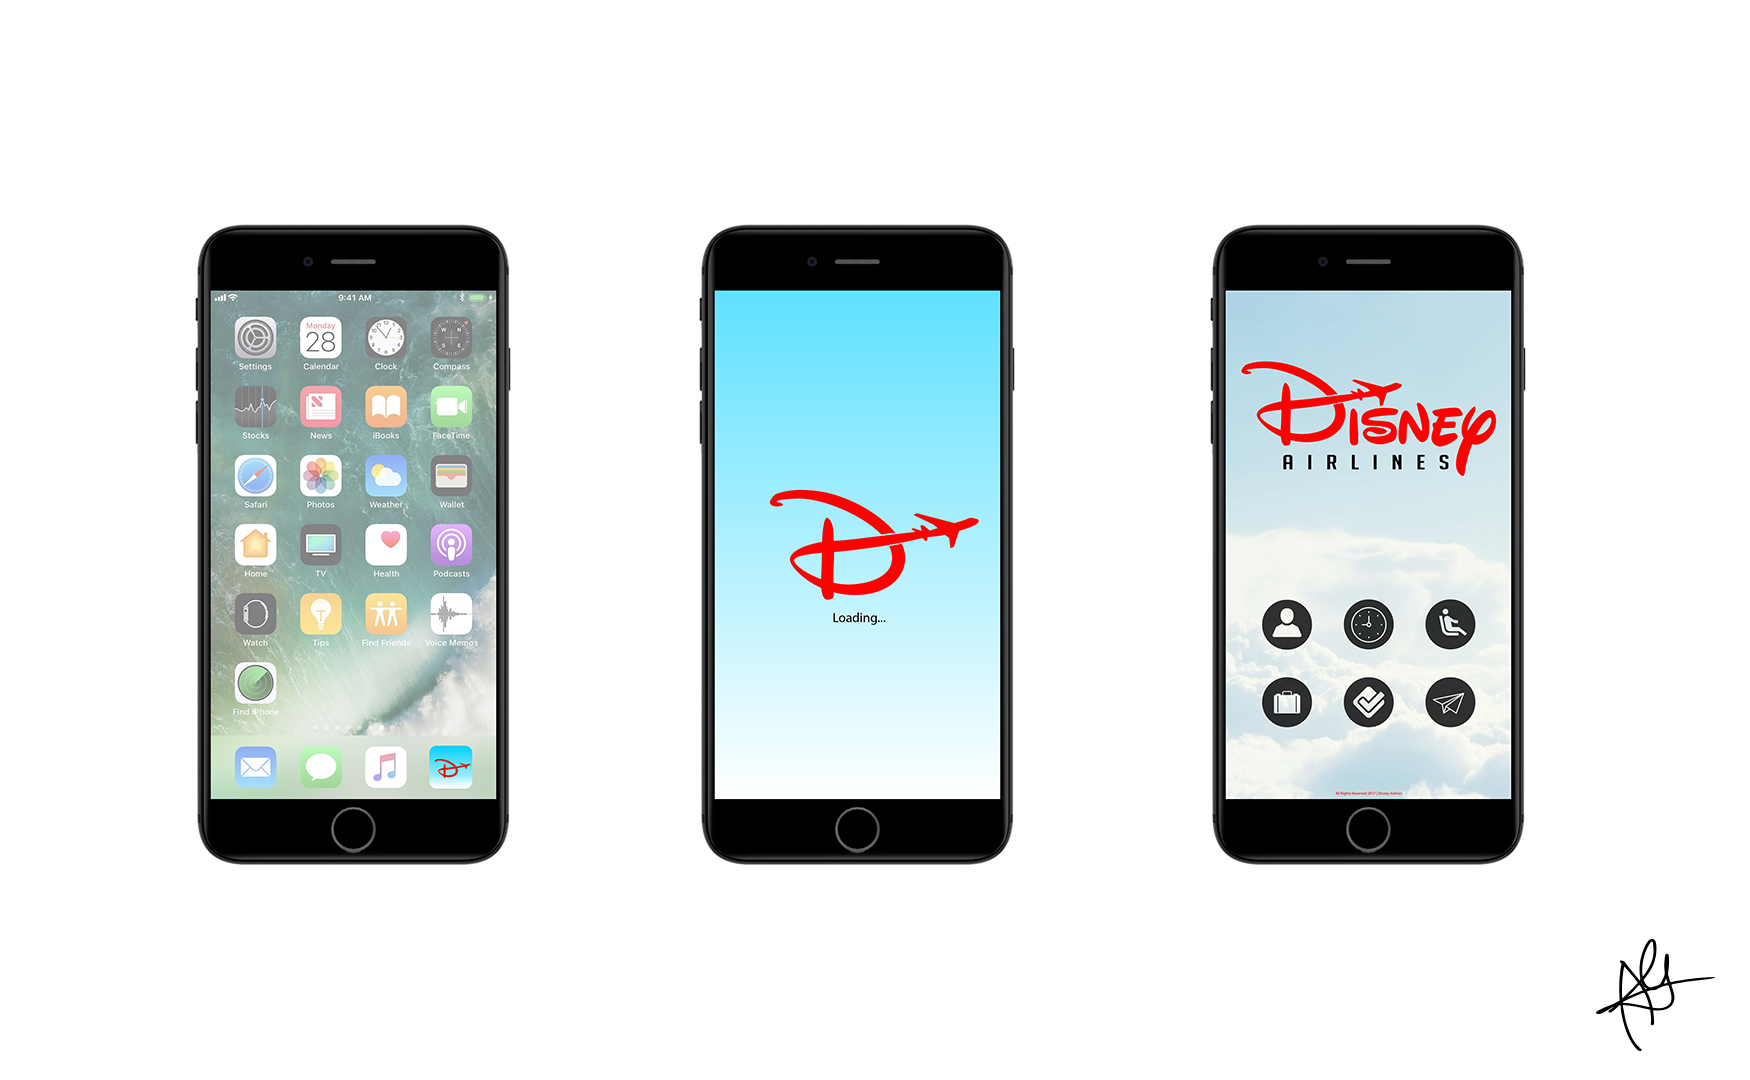 DISNEY AIRLINES CAMPAIGN - MOBILE APP MOCKUP